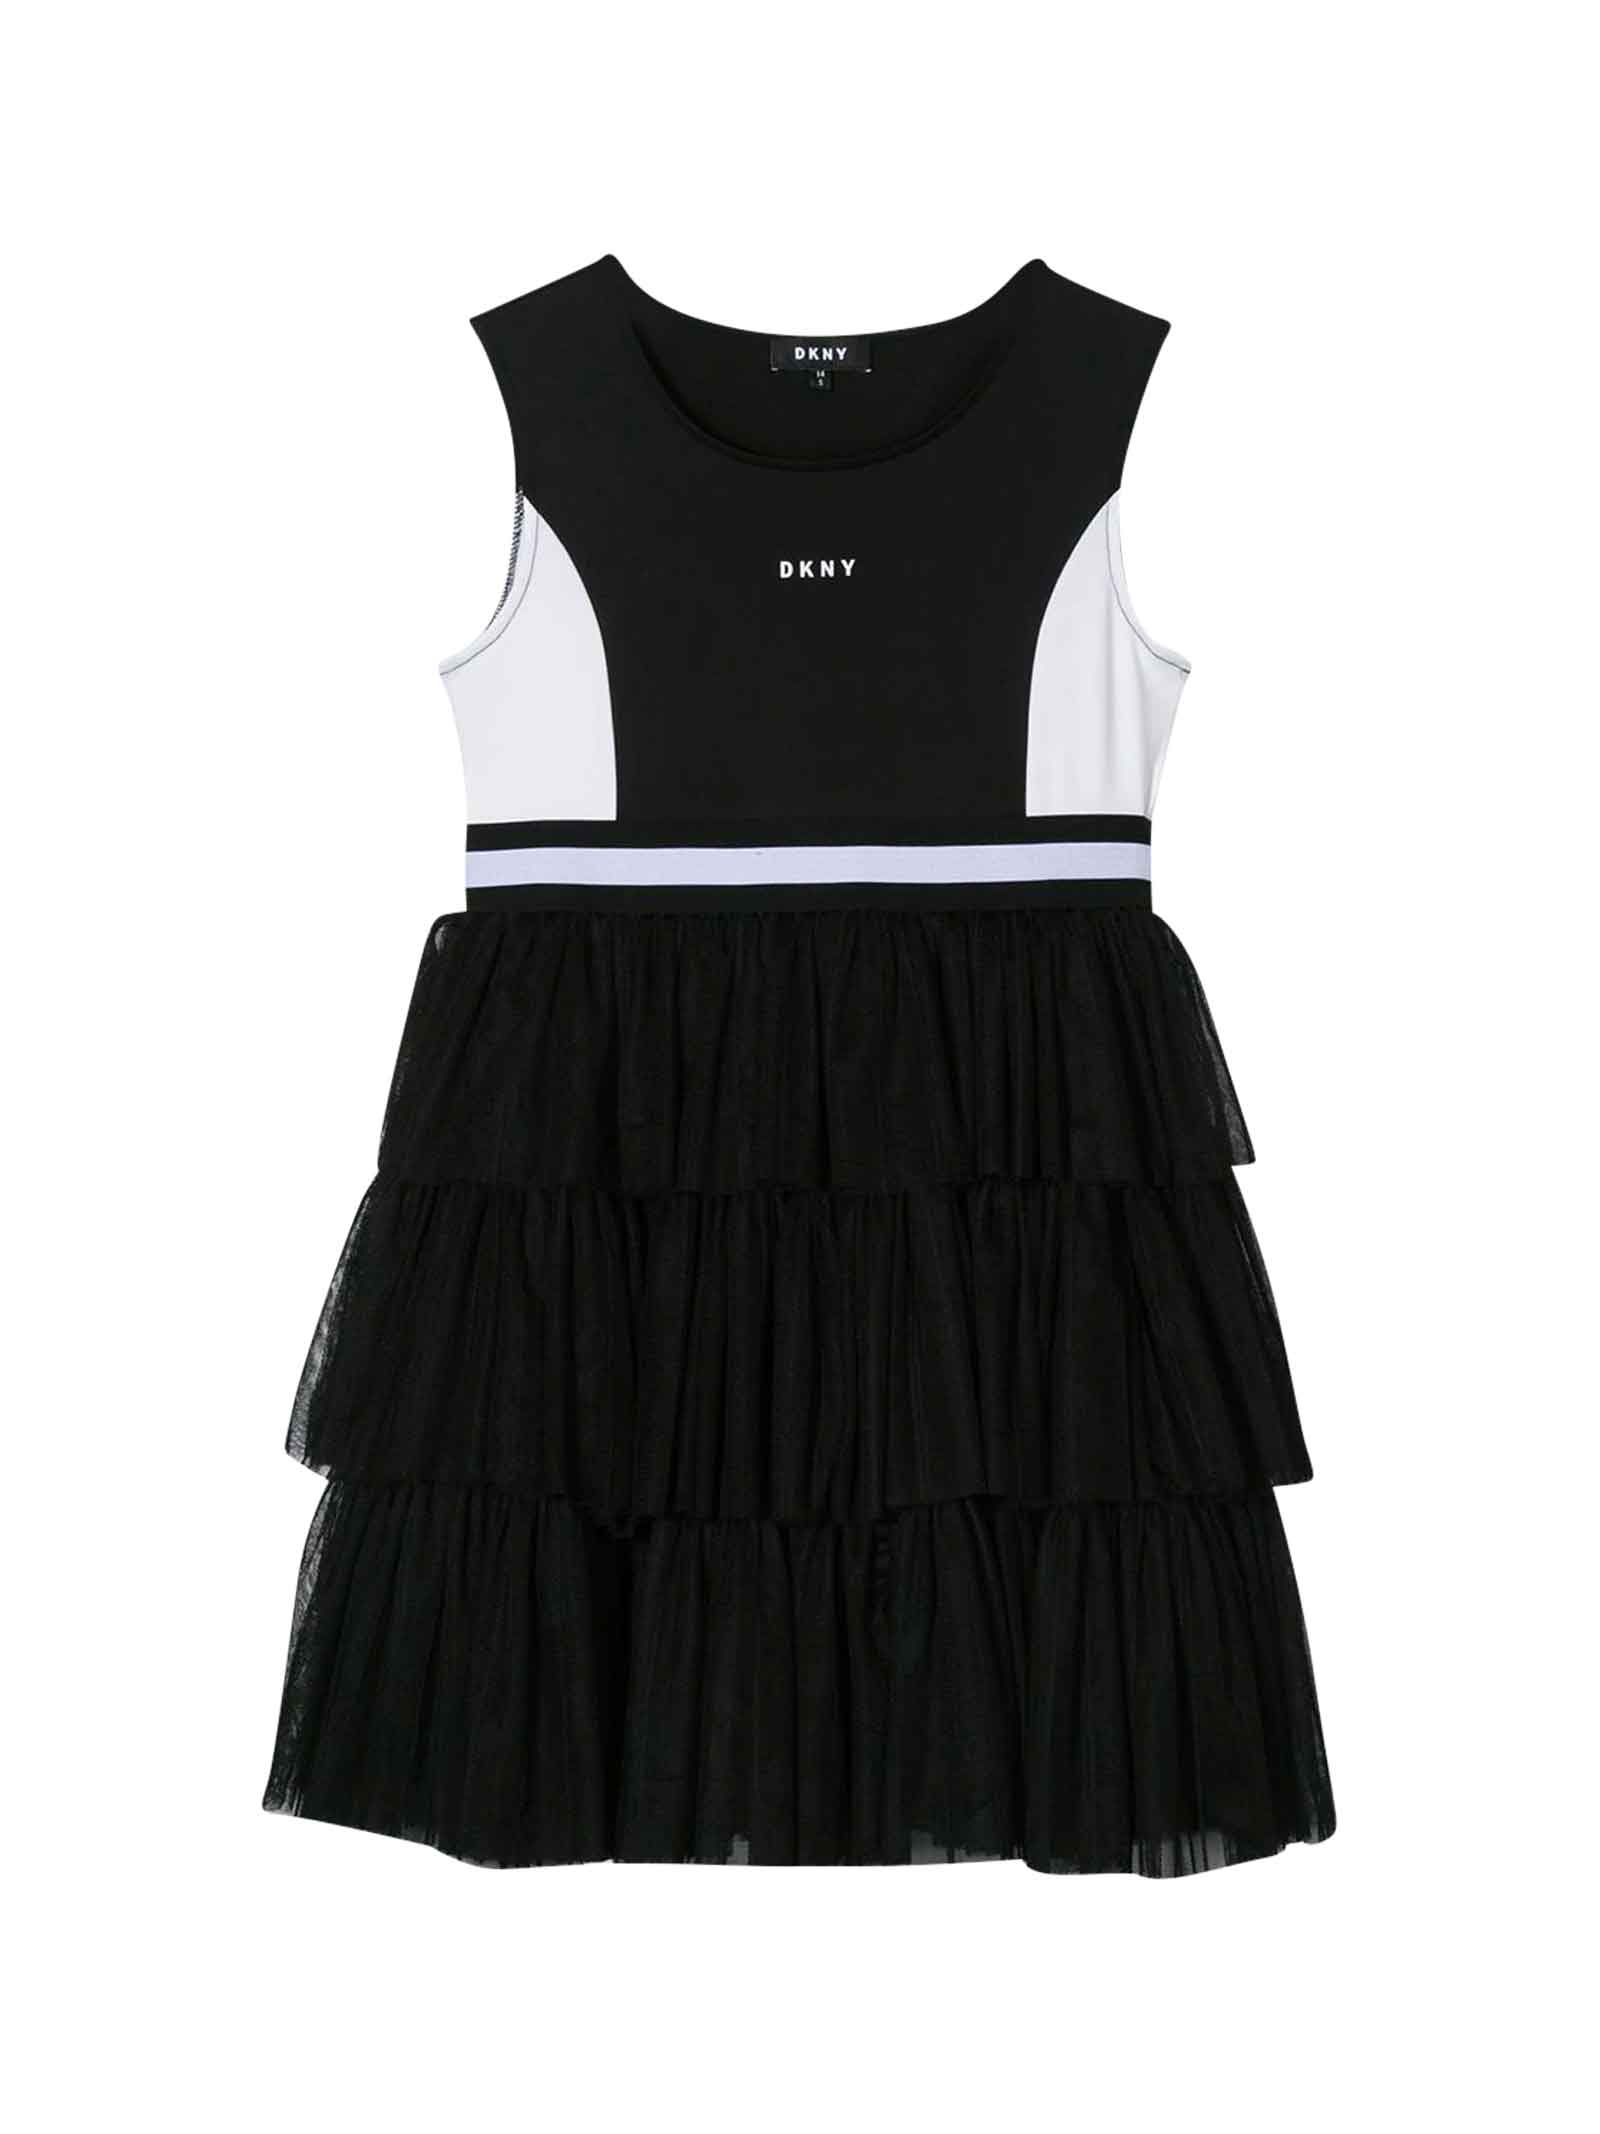 Buy DKNY Black Dress With Logo online, shop DKNY with free shipping